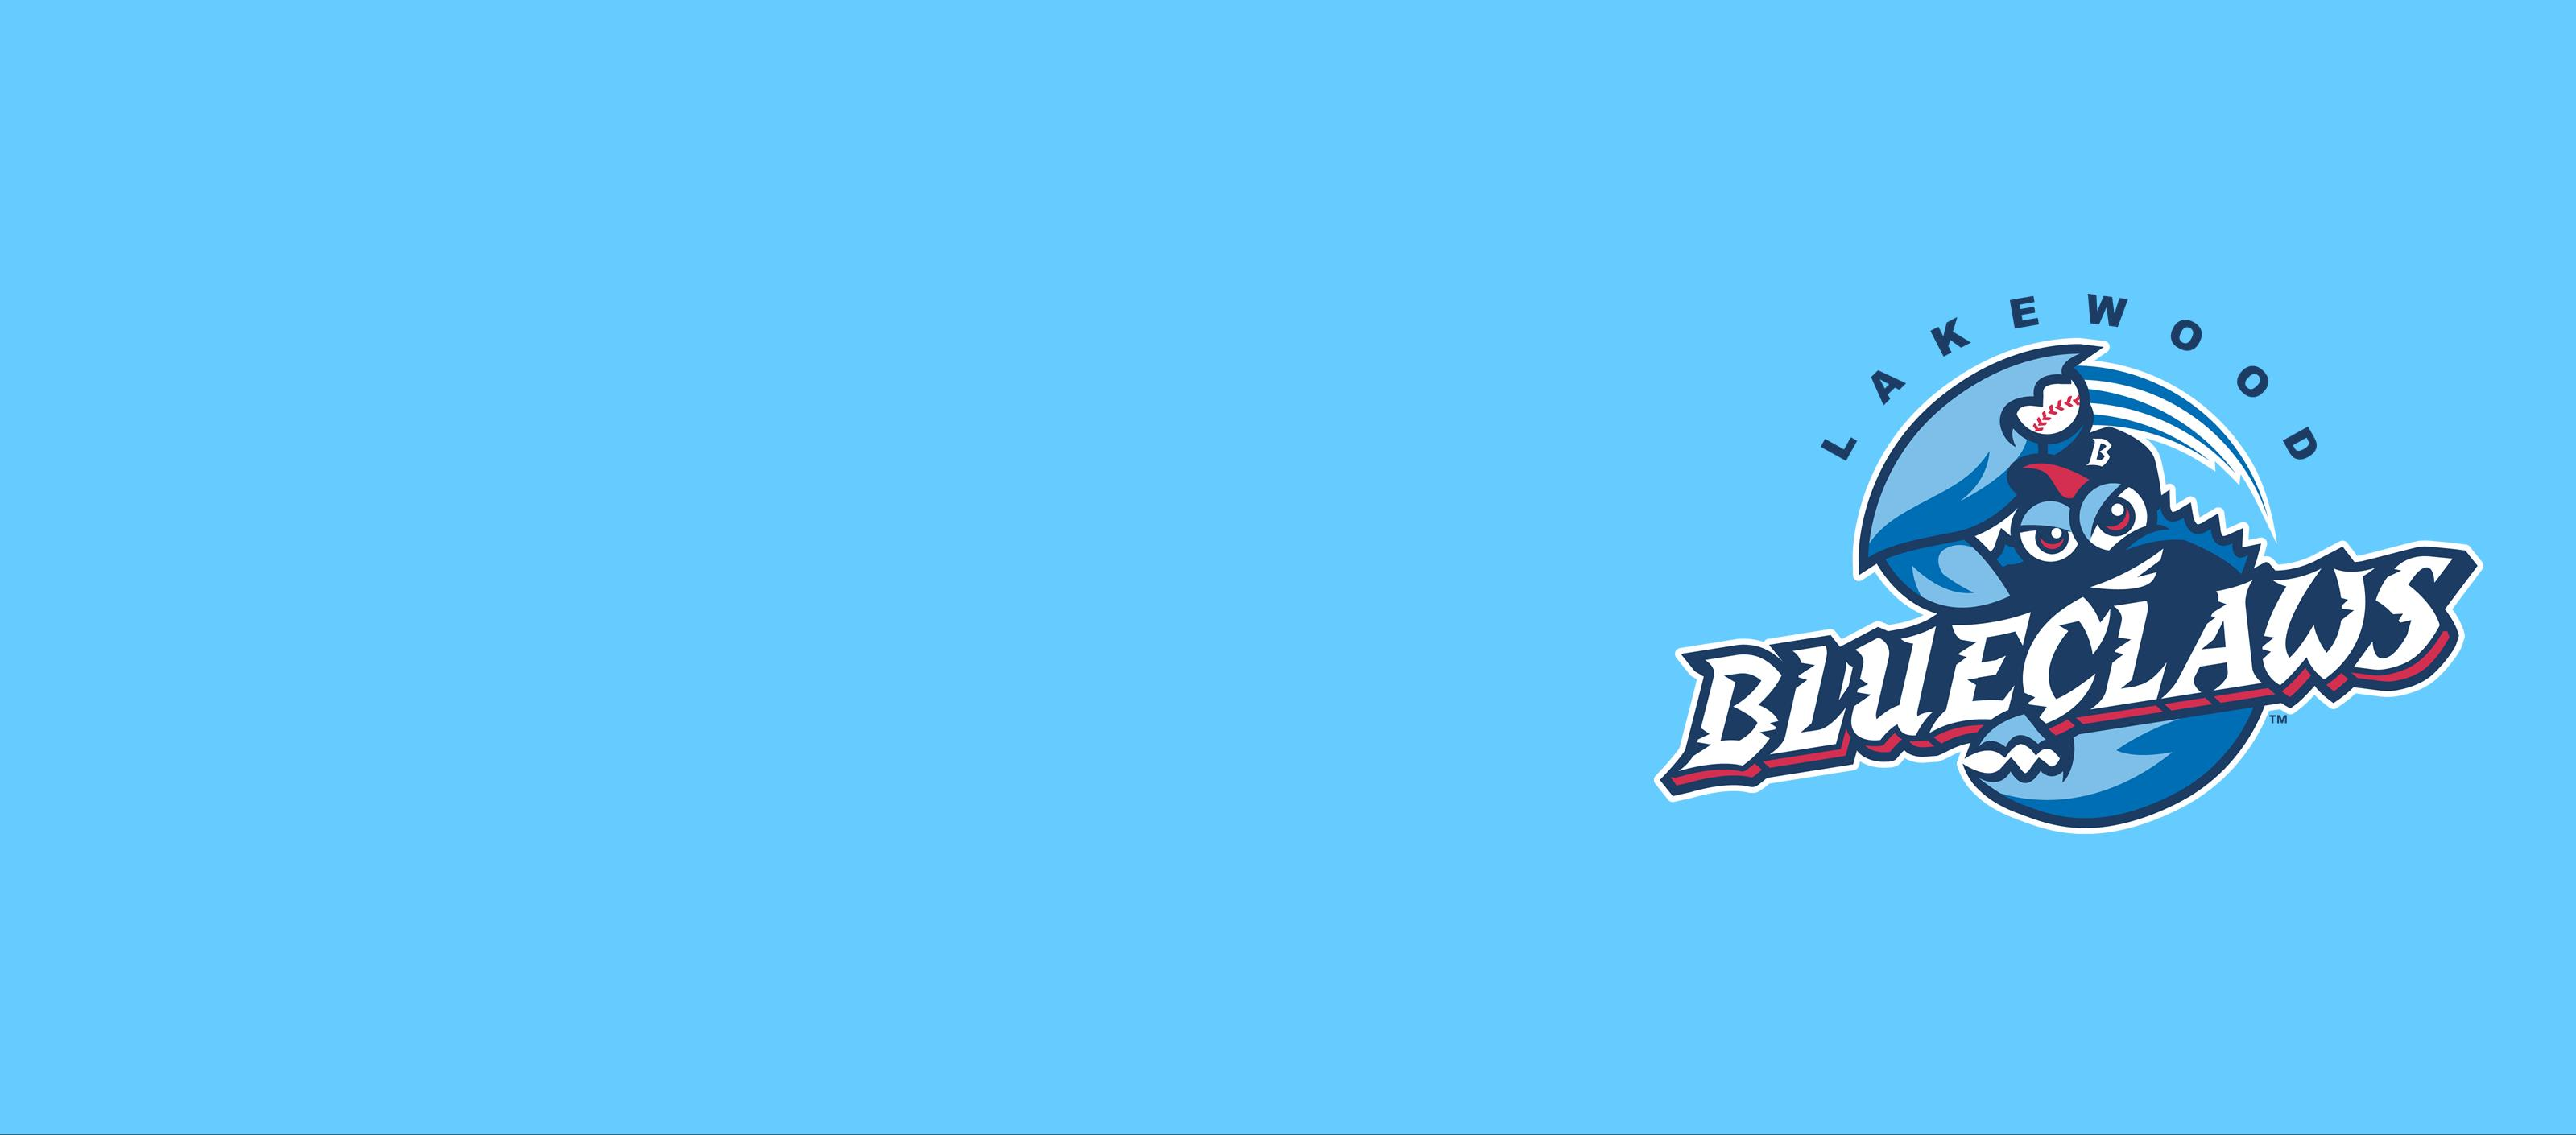 BlueClaws Community Partner Games 2018